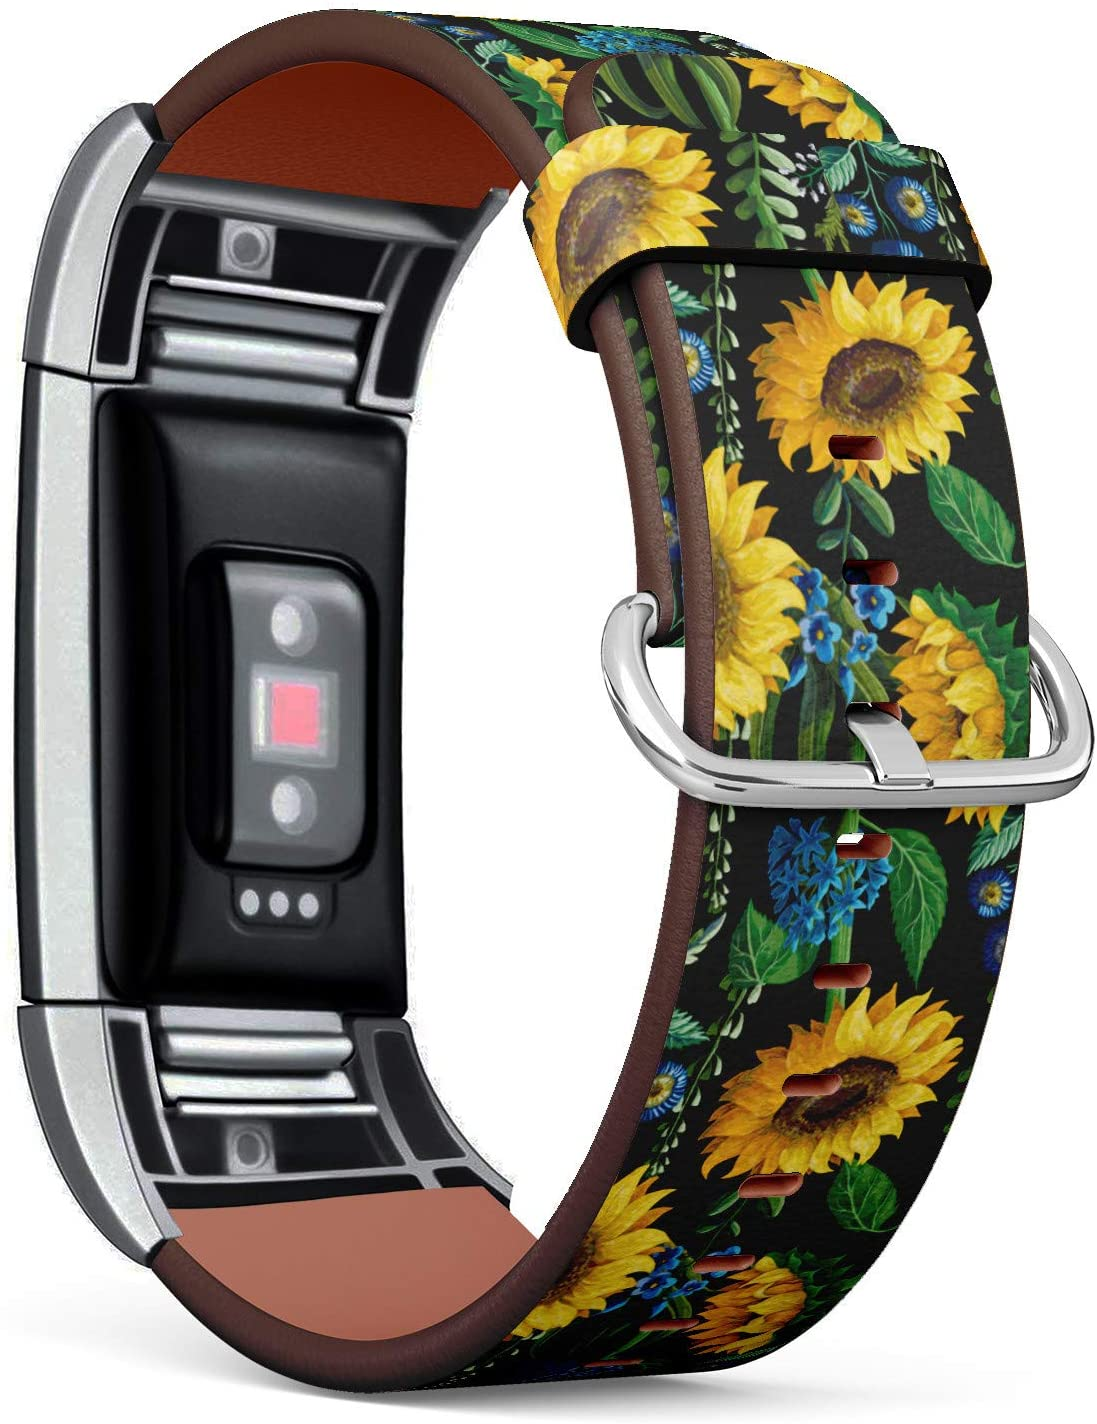 Sunflower Floral Pattern - Patterned Leather Wristband Strap Compatible with Fitbit Charge 2